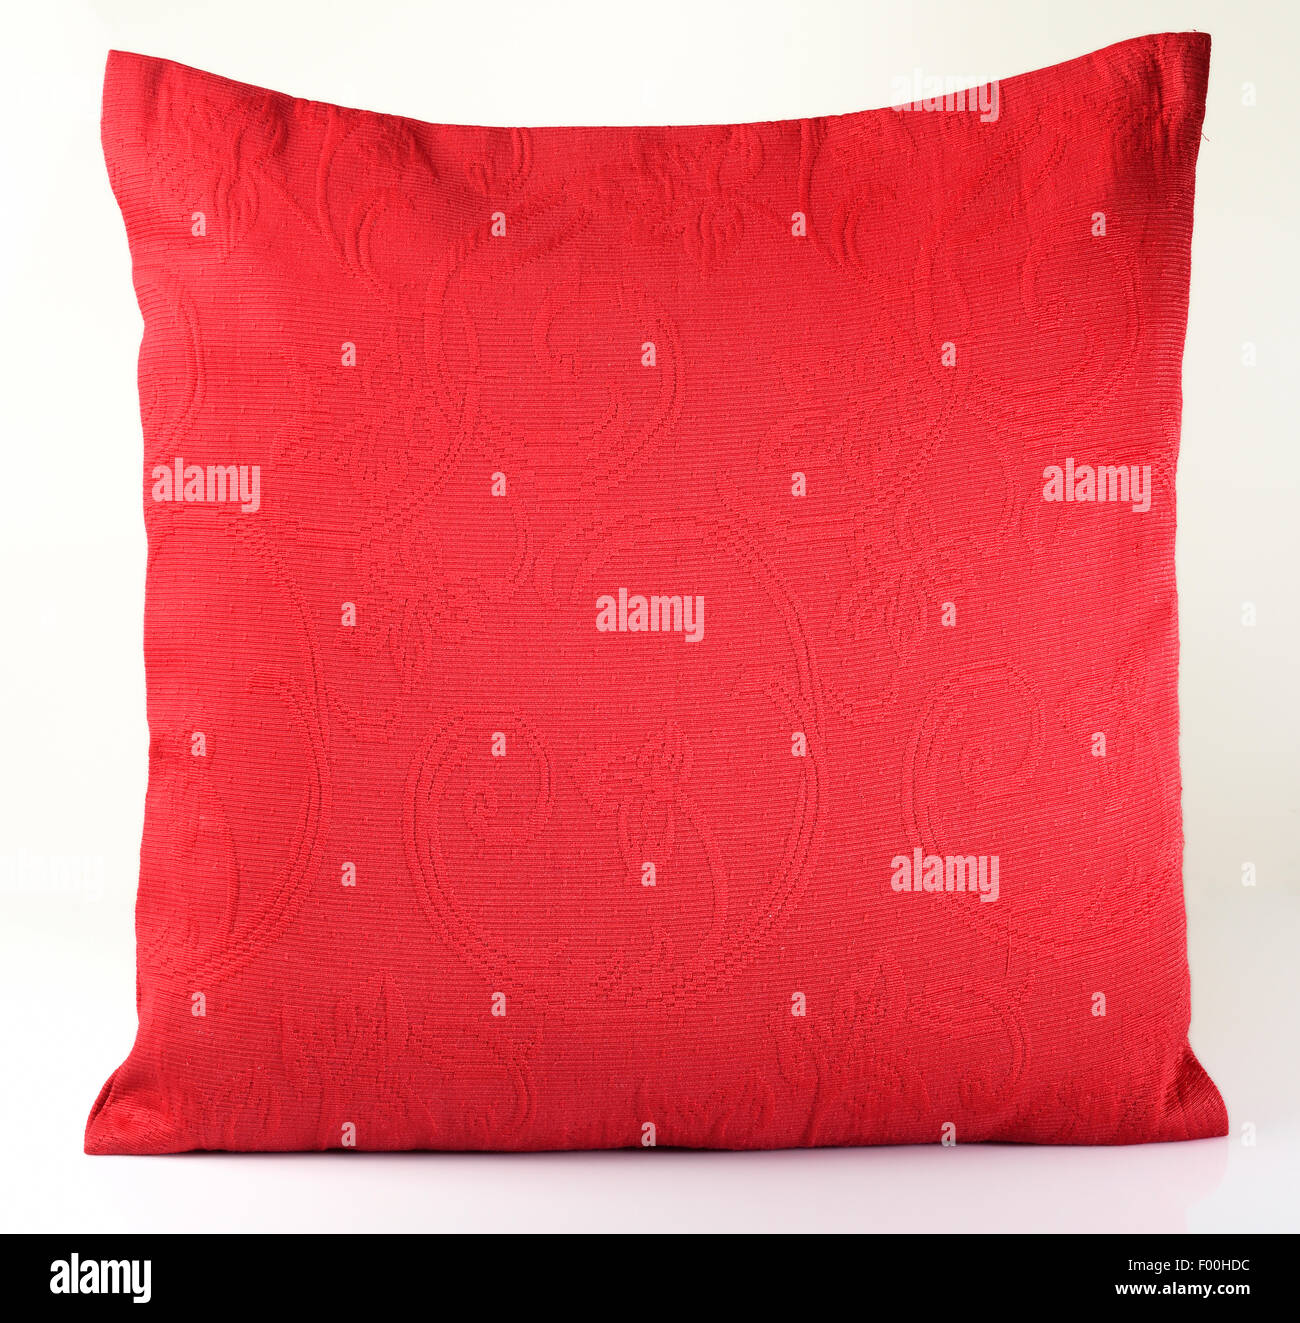 Red Pillow on white background - Stock Image